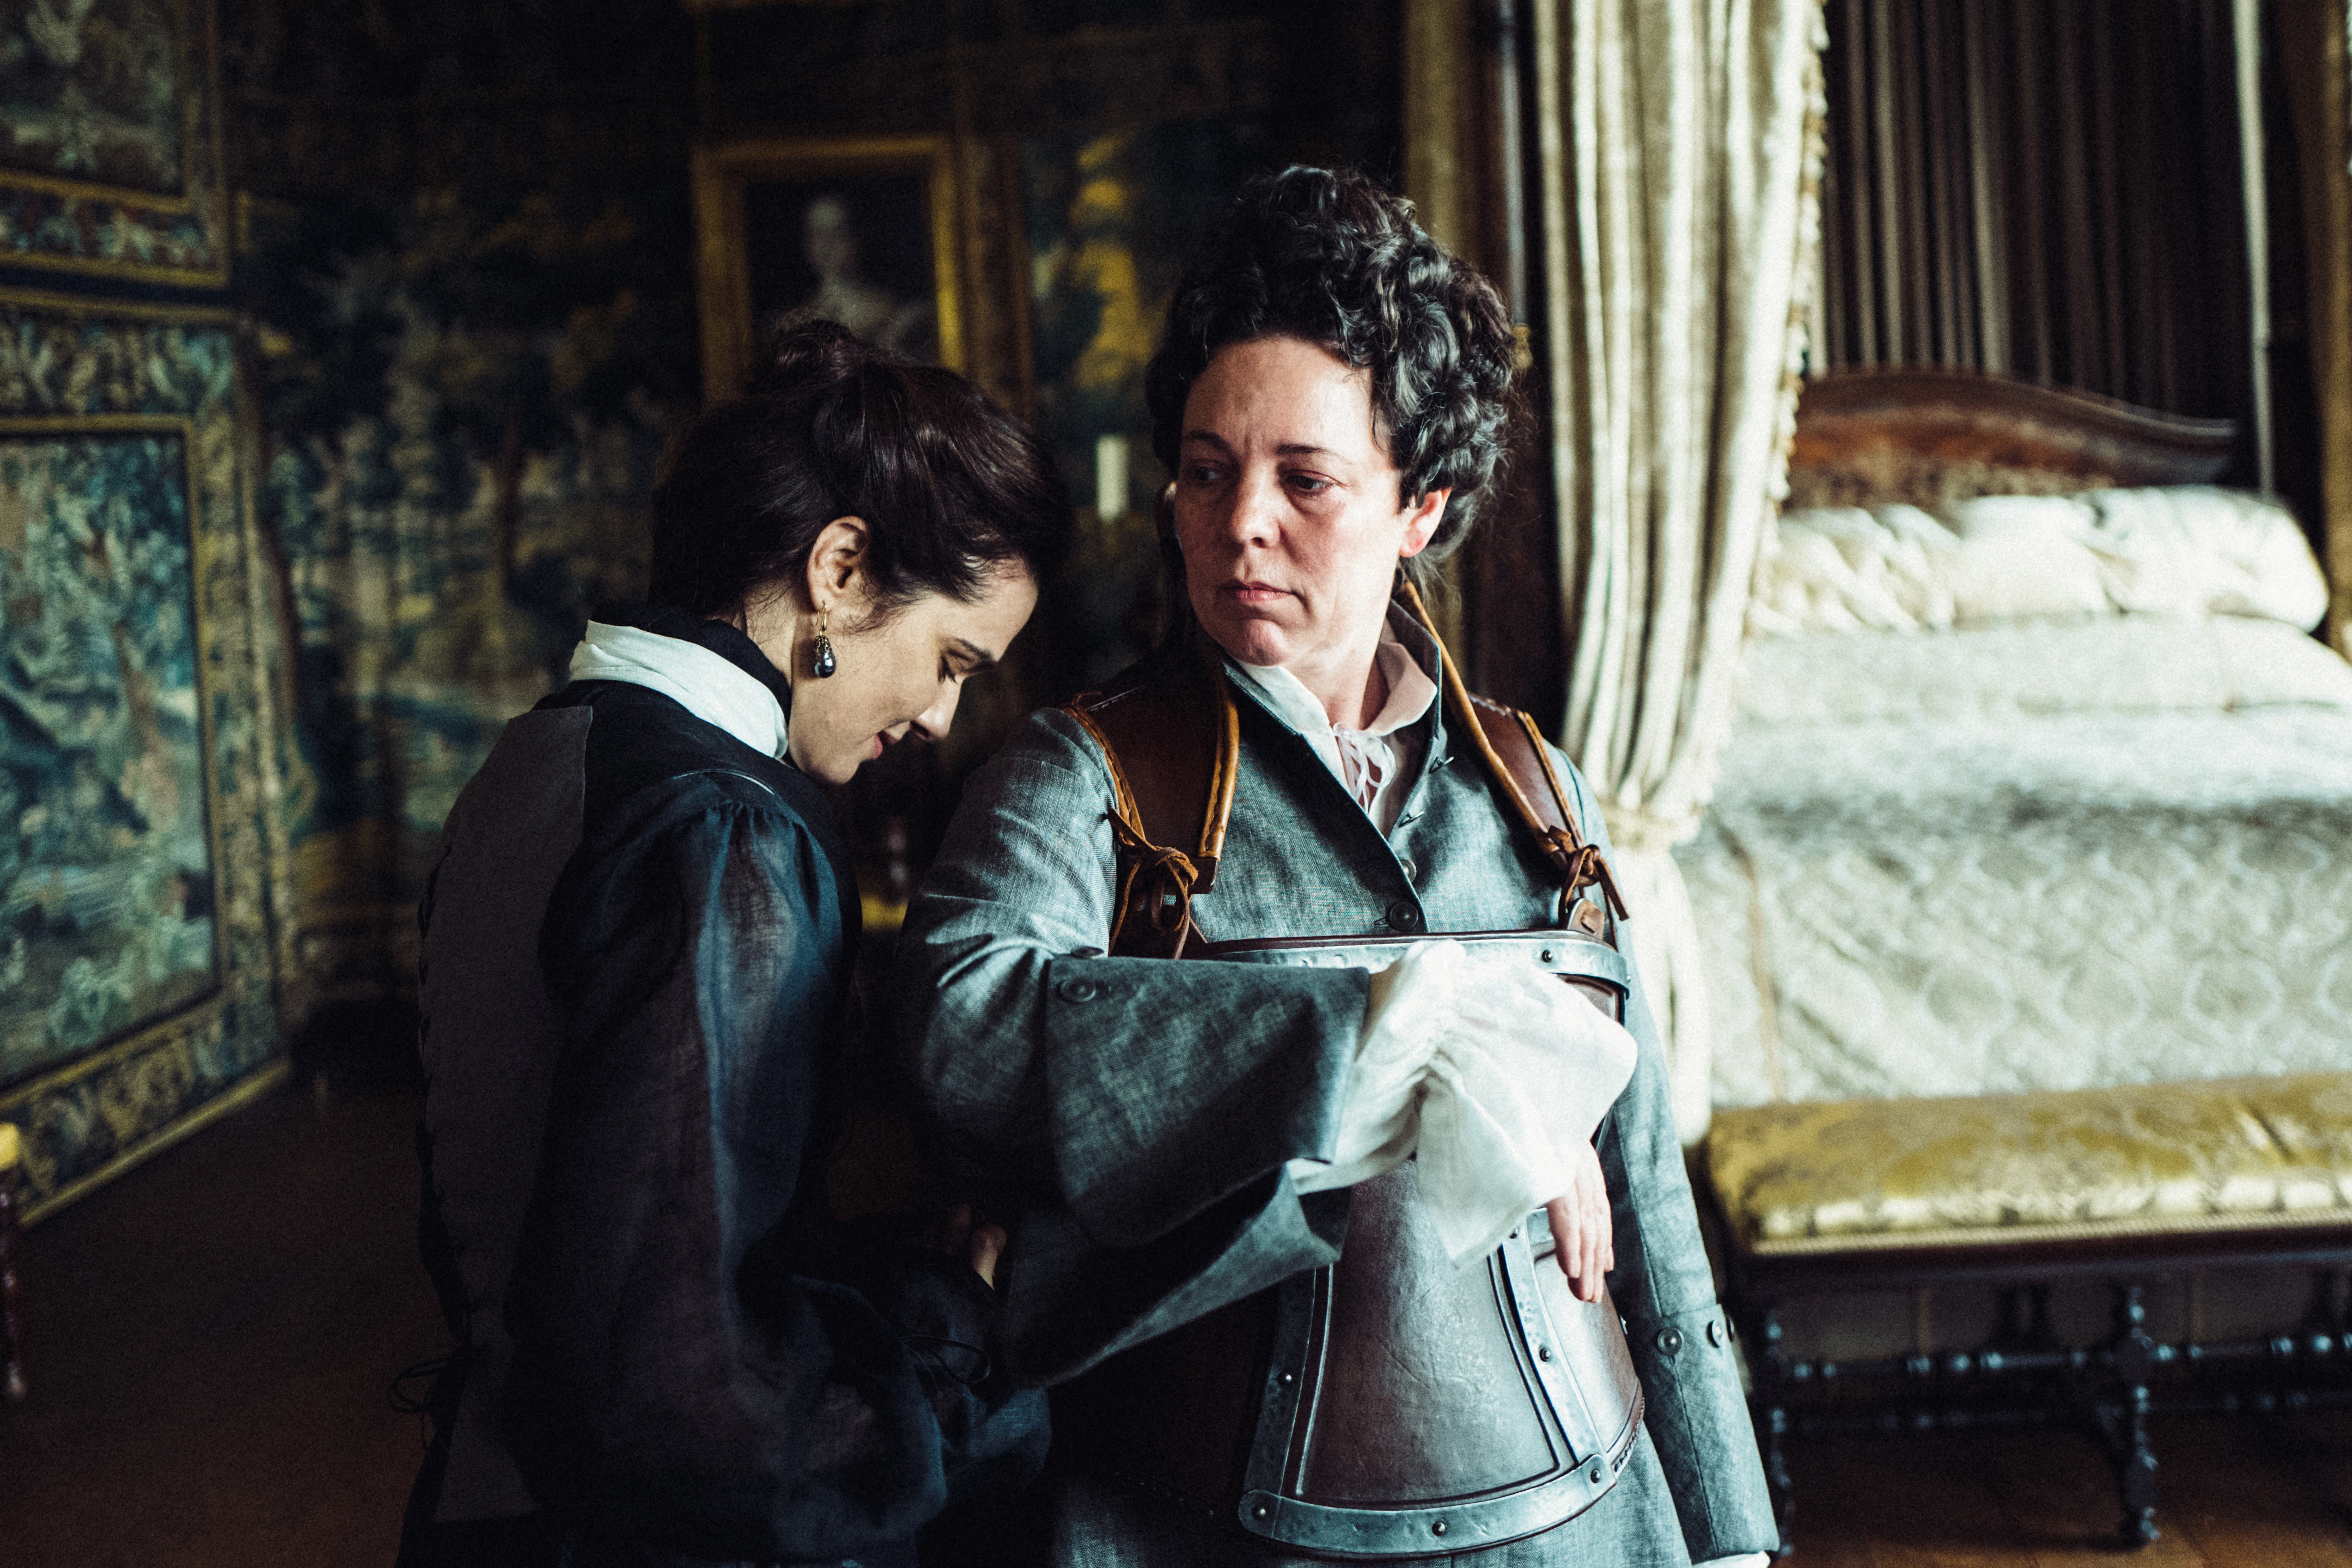 Rachel Weisz and Olivia Colman in the film THE FAVOURITE. Photo by Yorgos  Lanthimos.